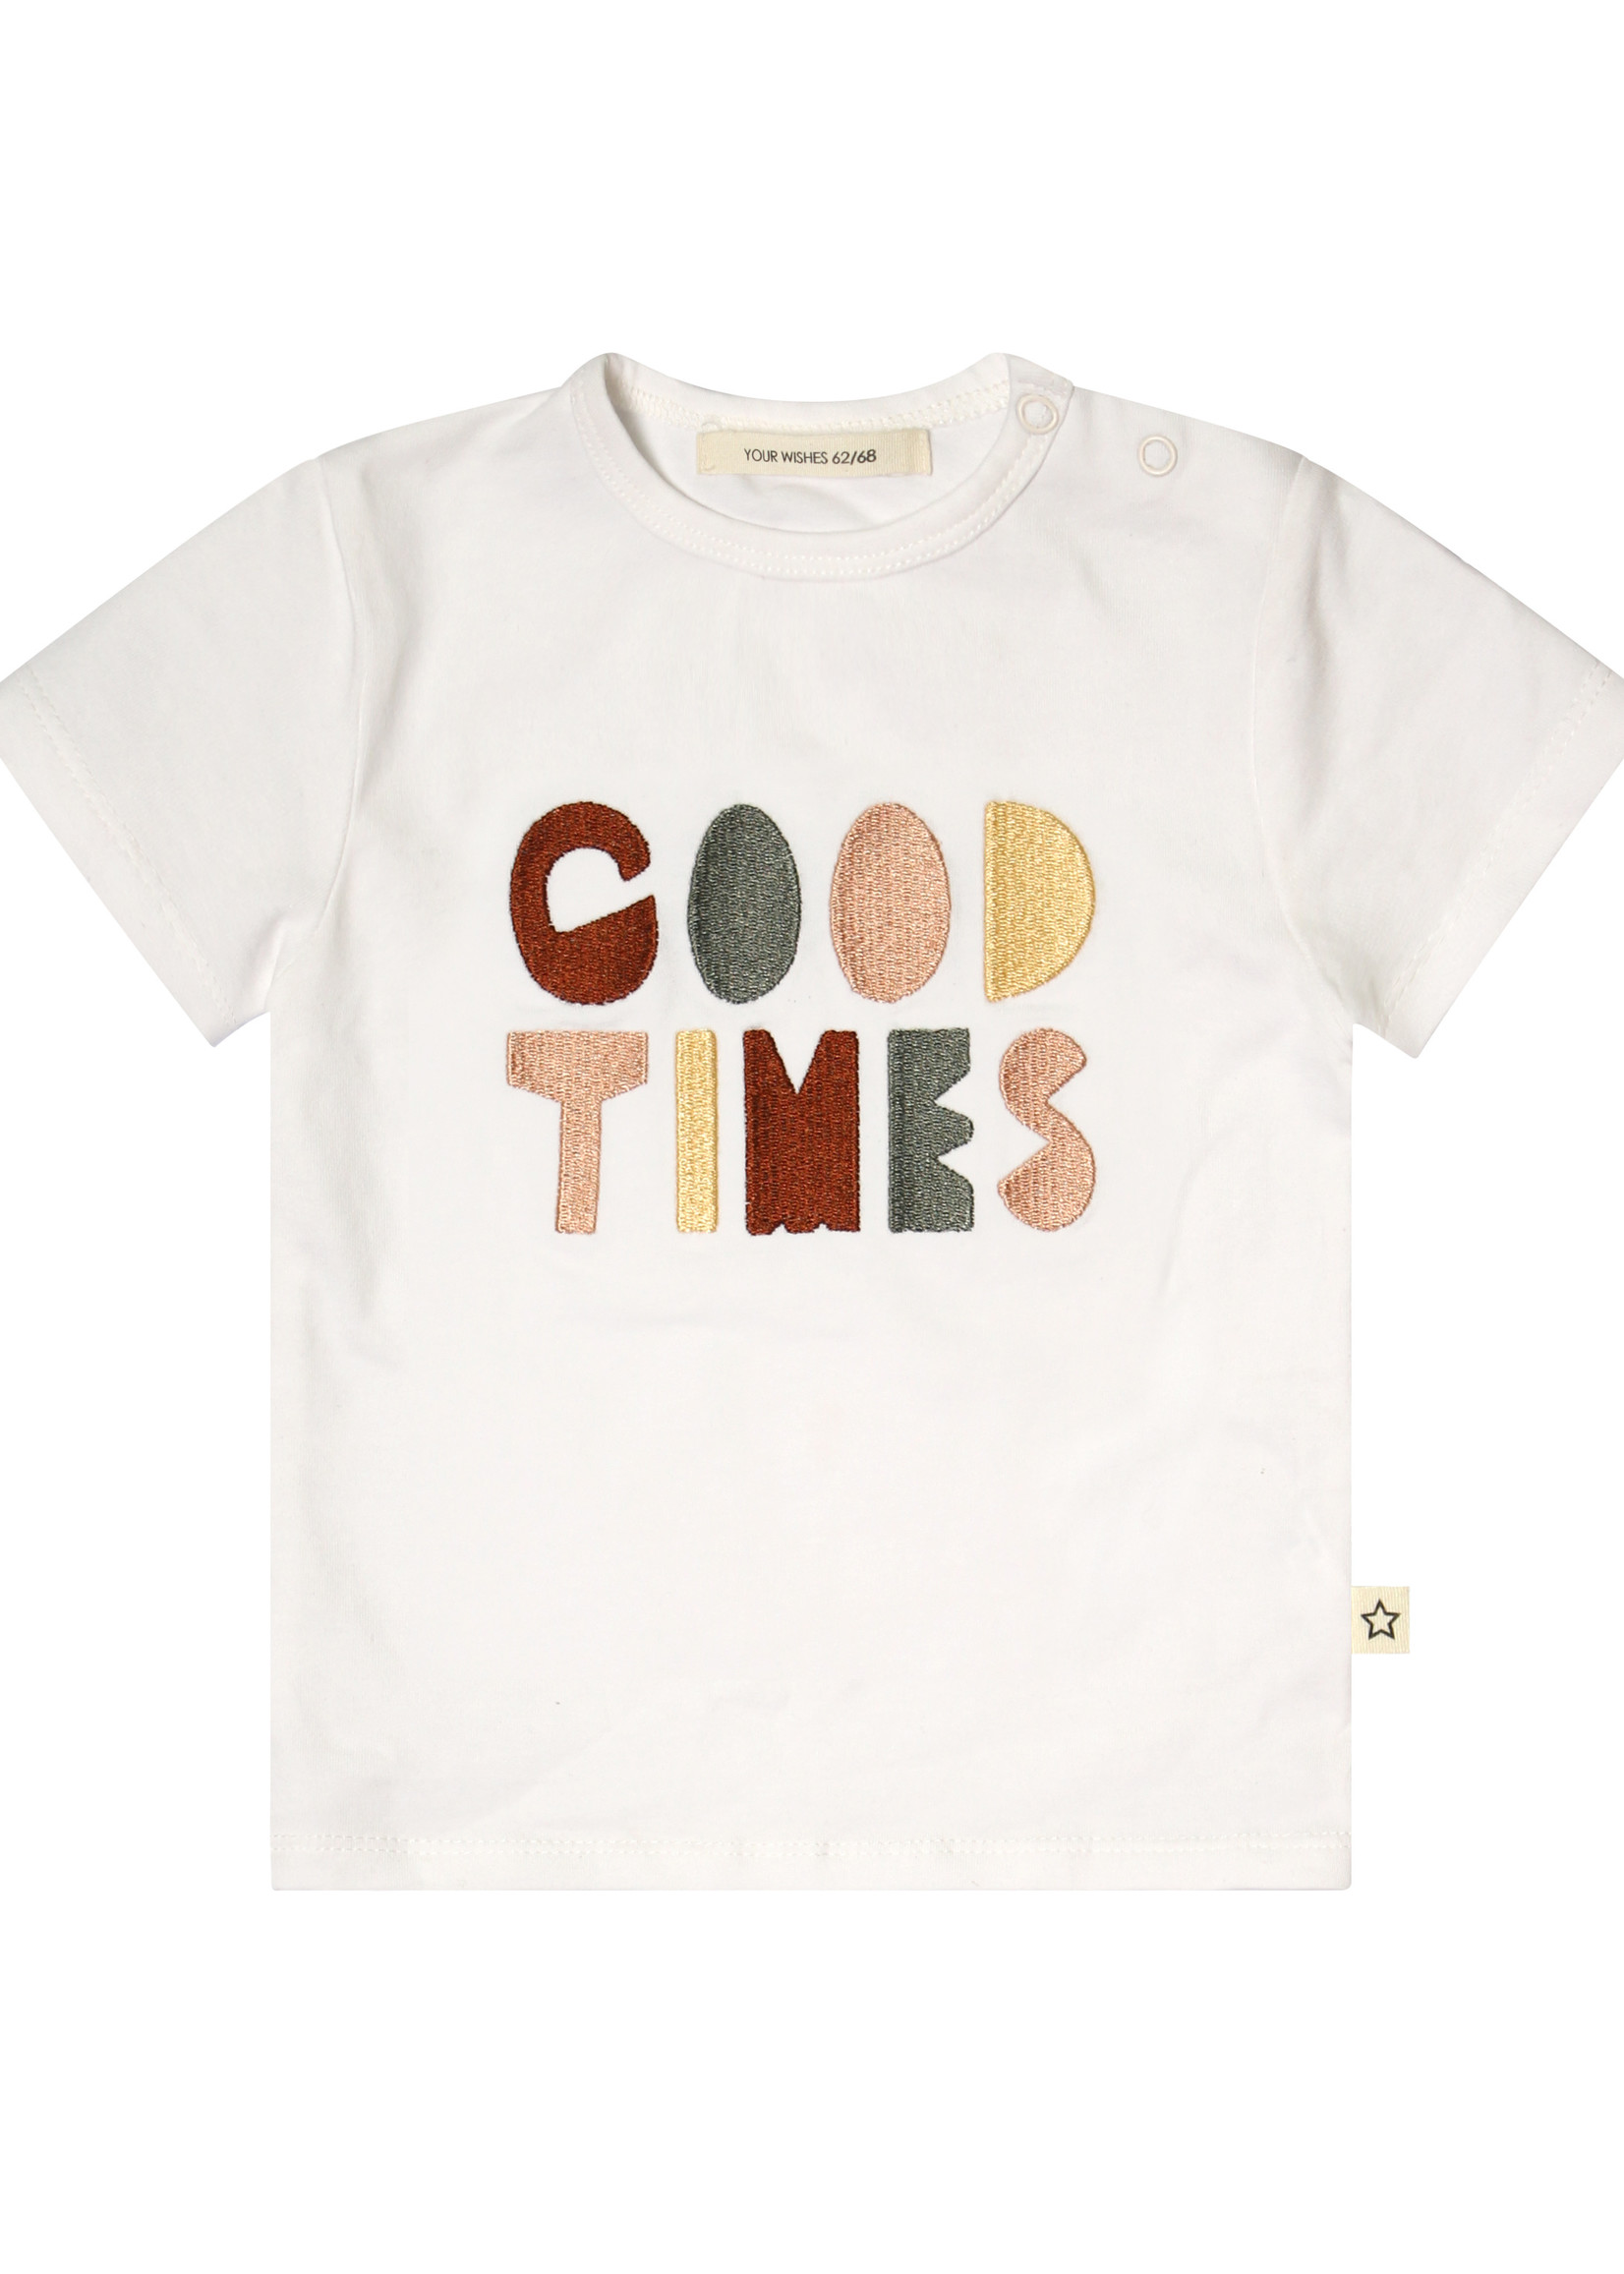 Your Wishes YW - Good Times Off White